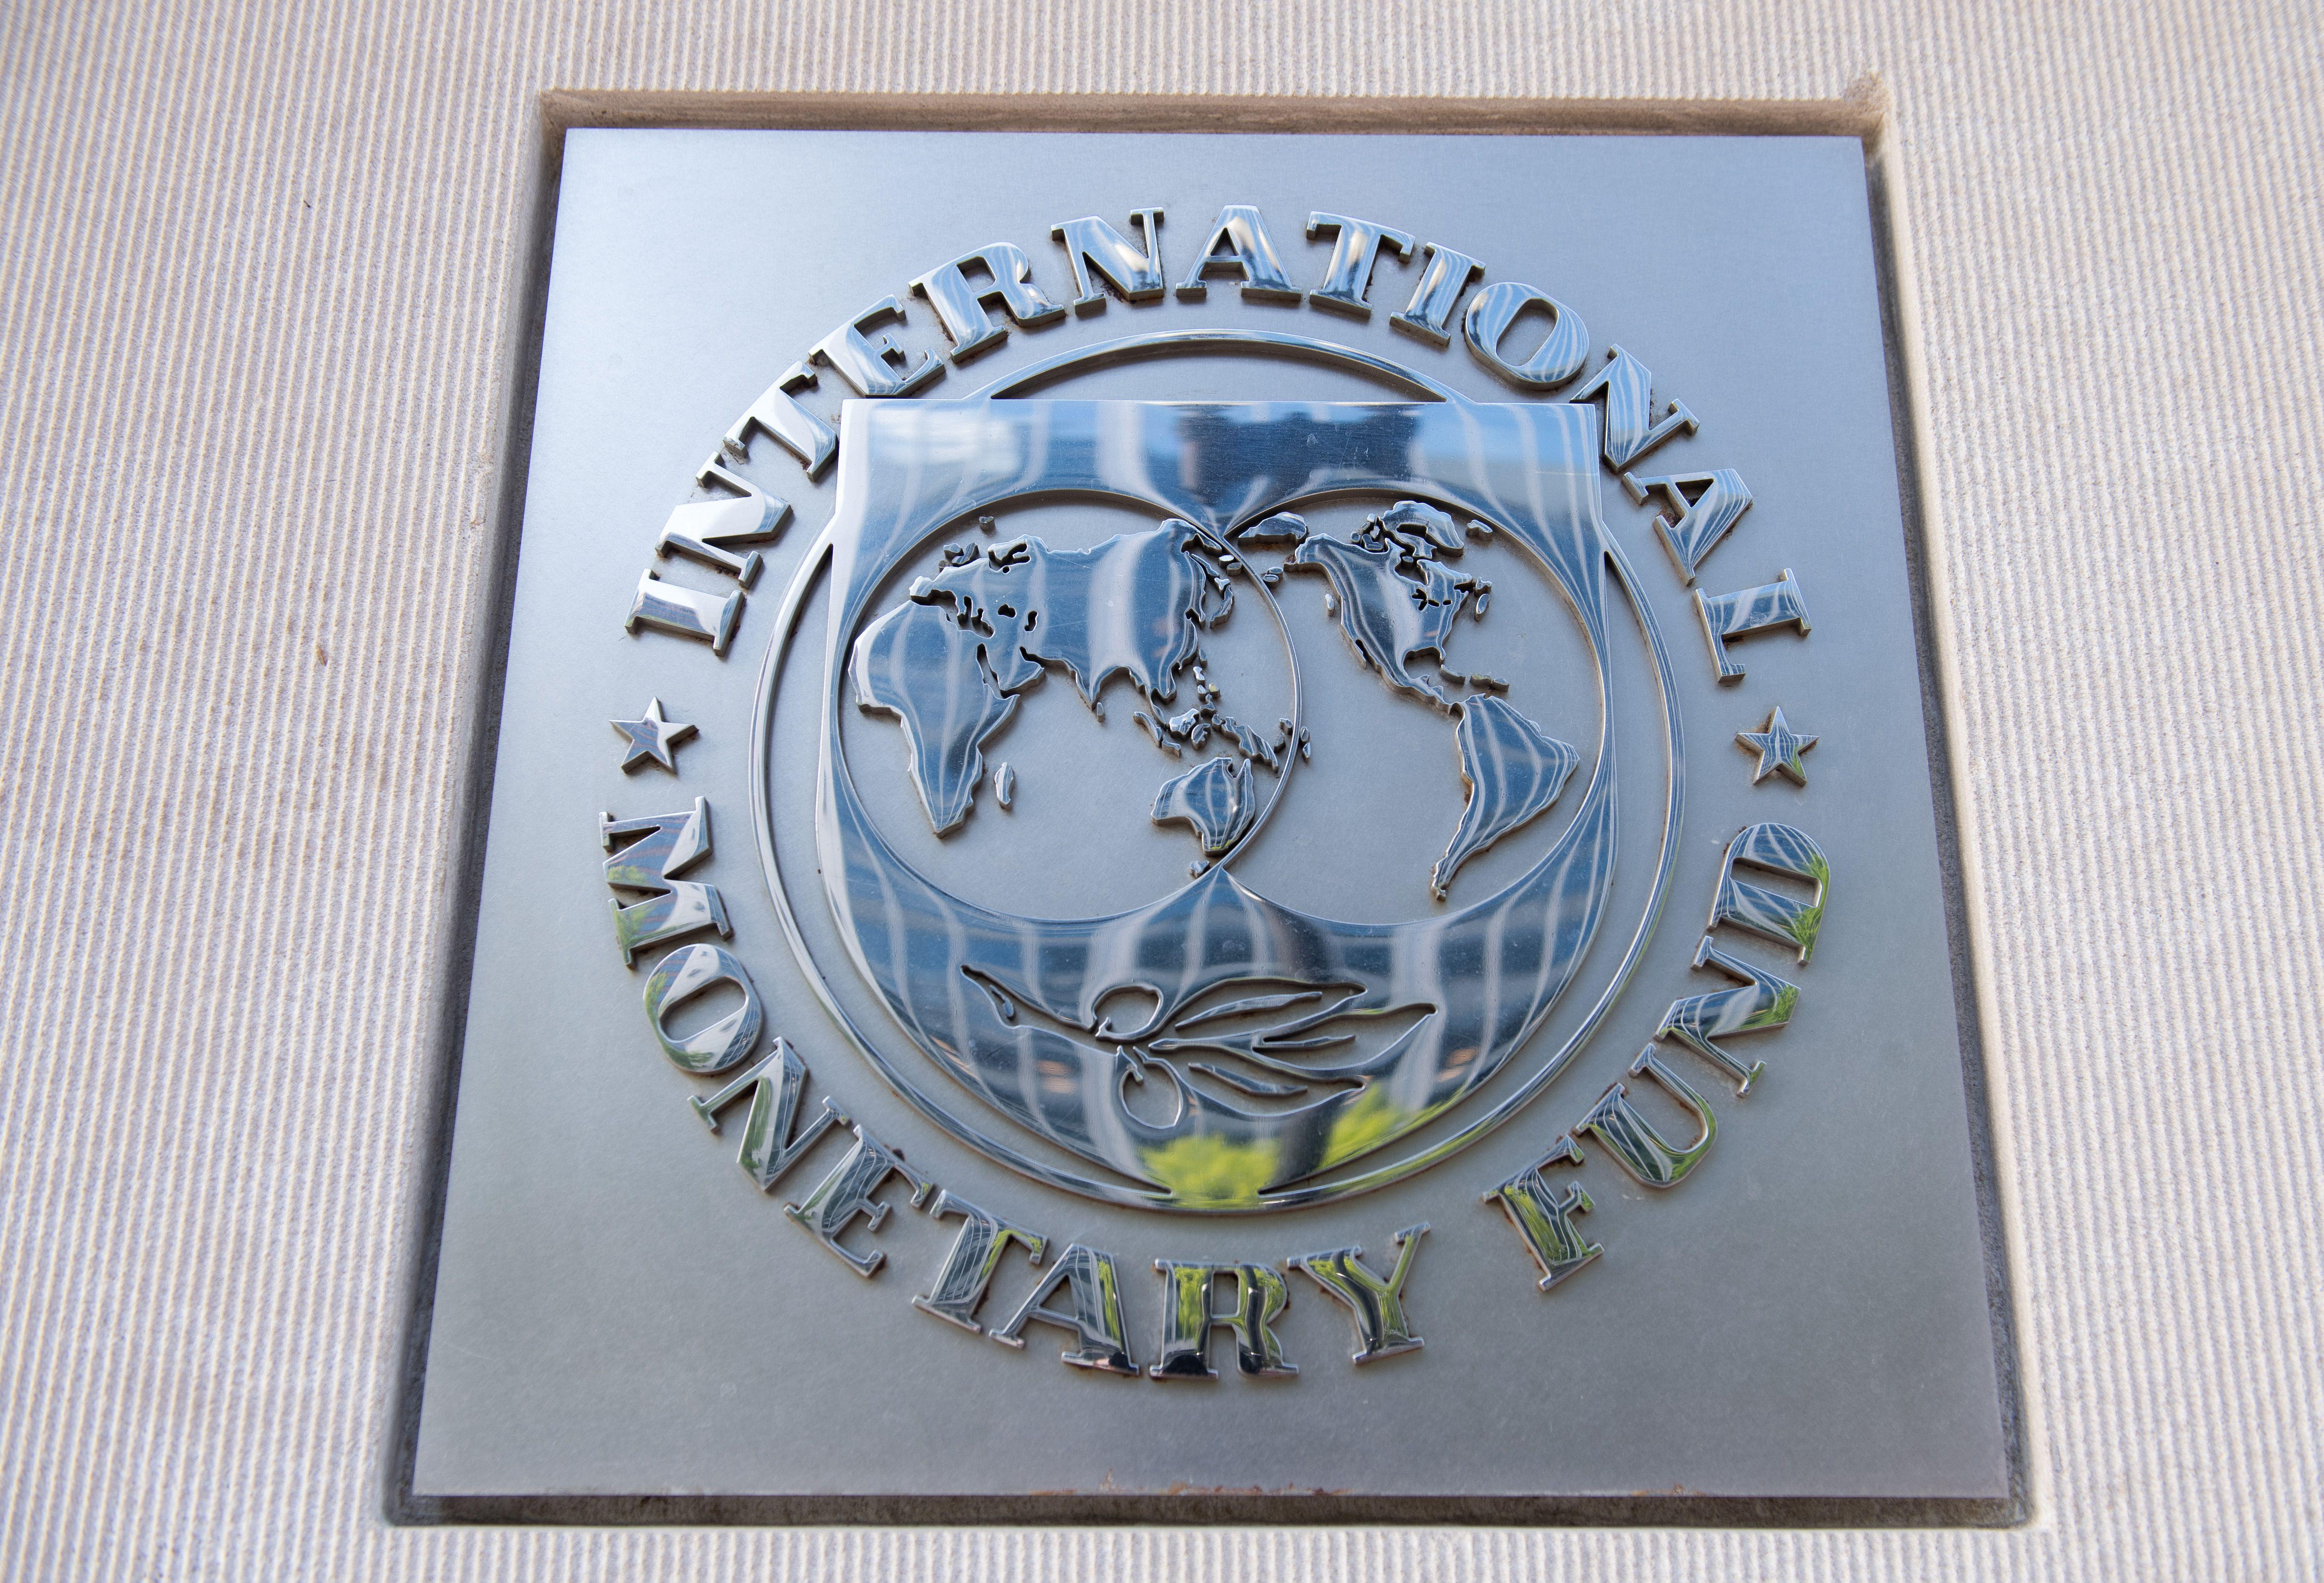 IMF expects global economy to contract by a record 4.9% in 2020